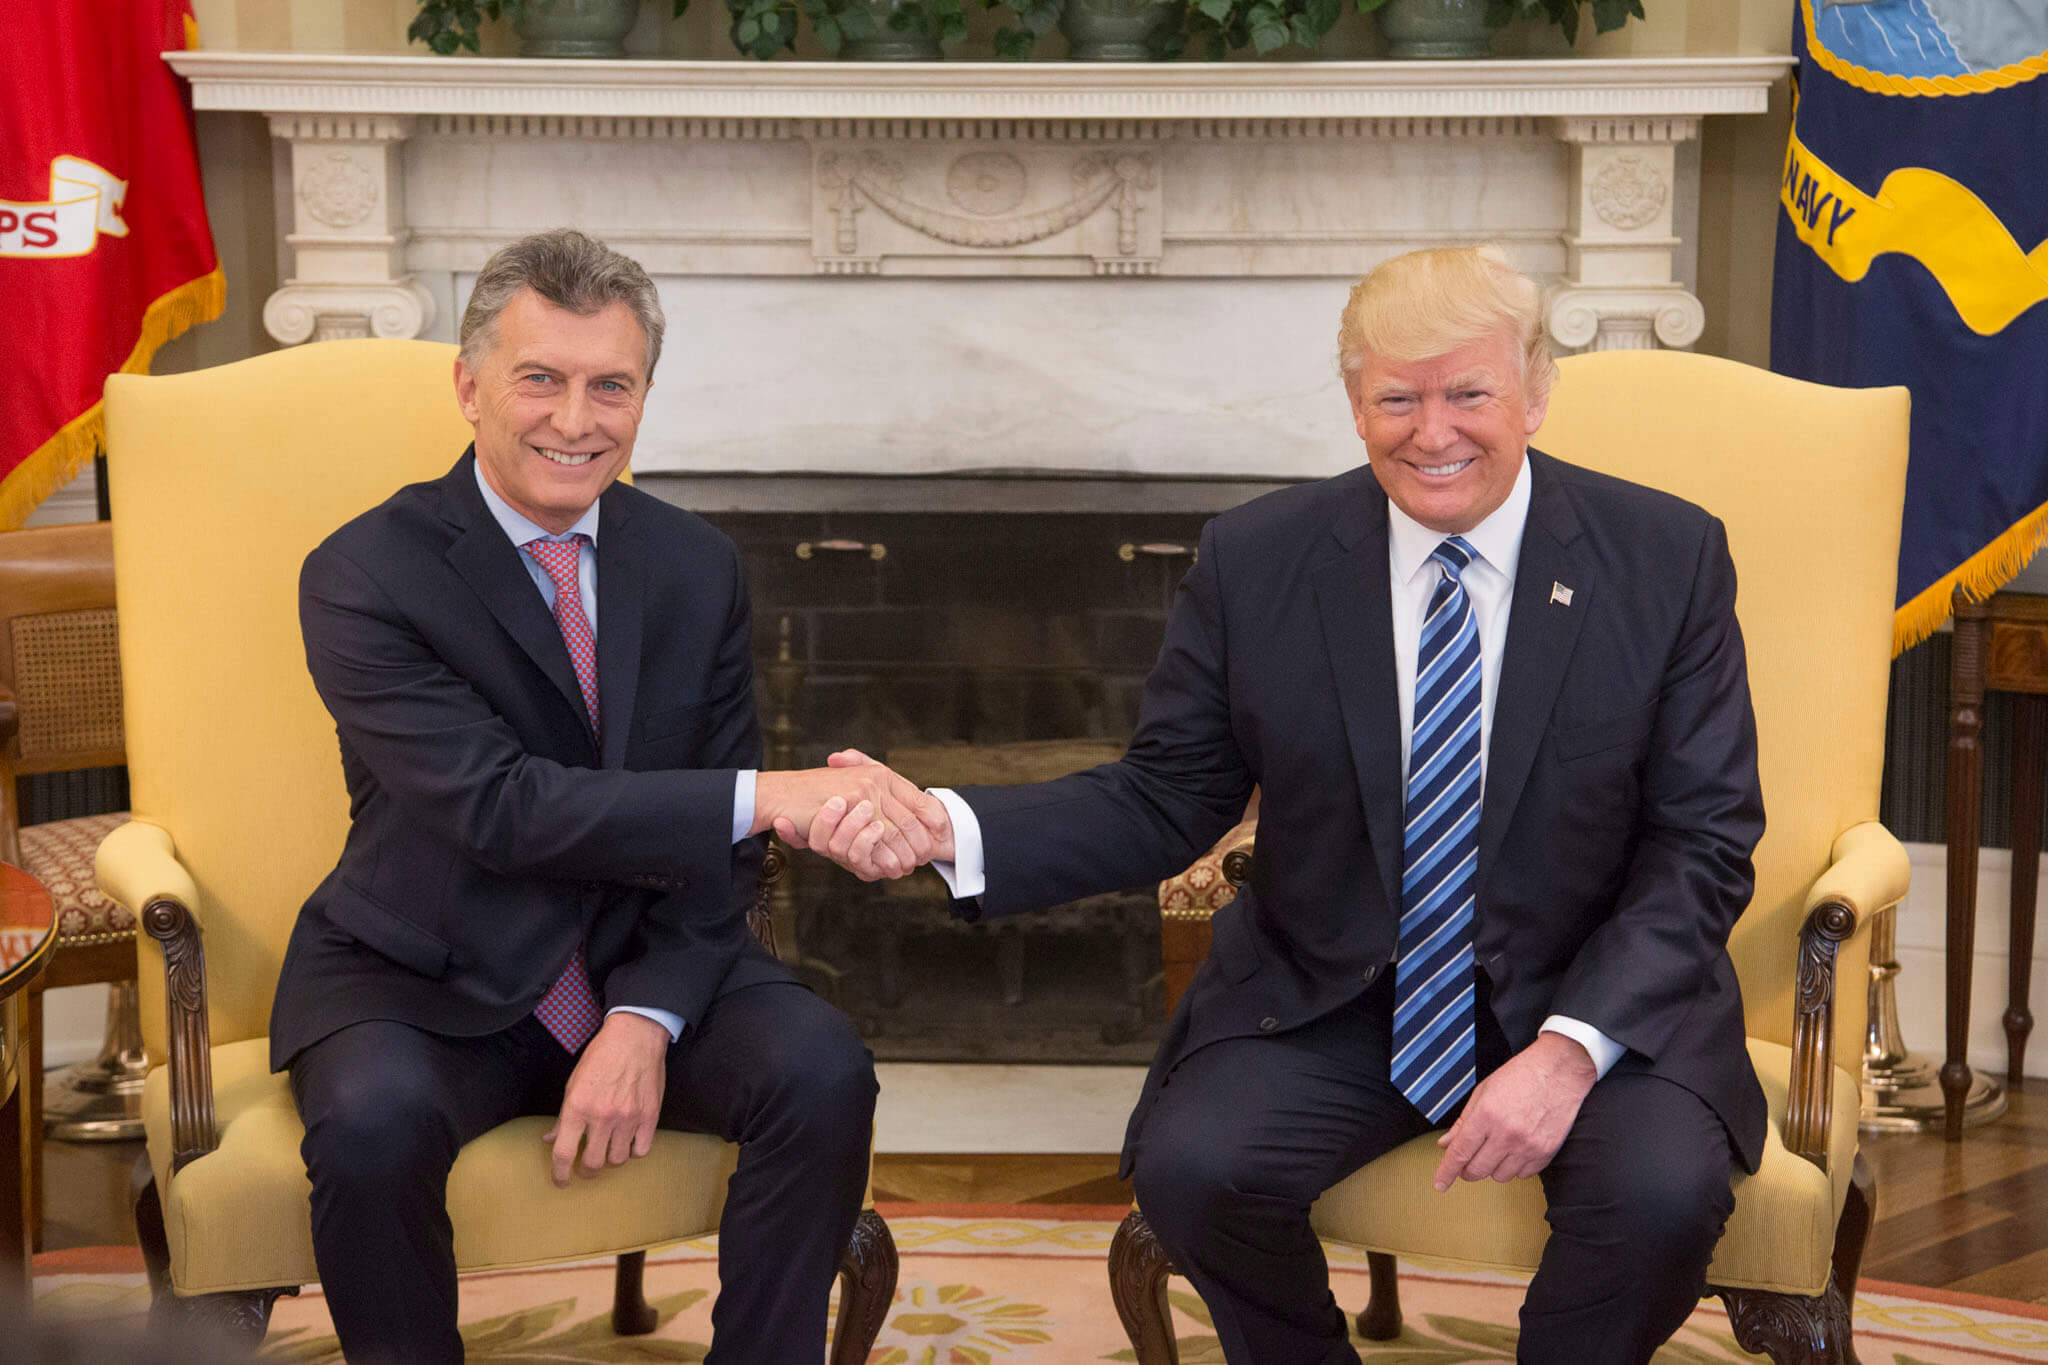 Macri speaks to Trump and receives a 'positive' message for the Argentinian government